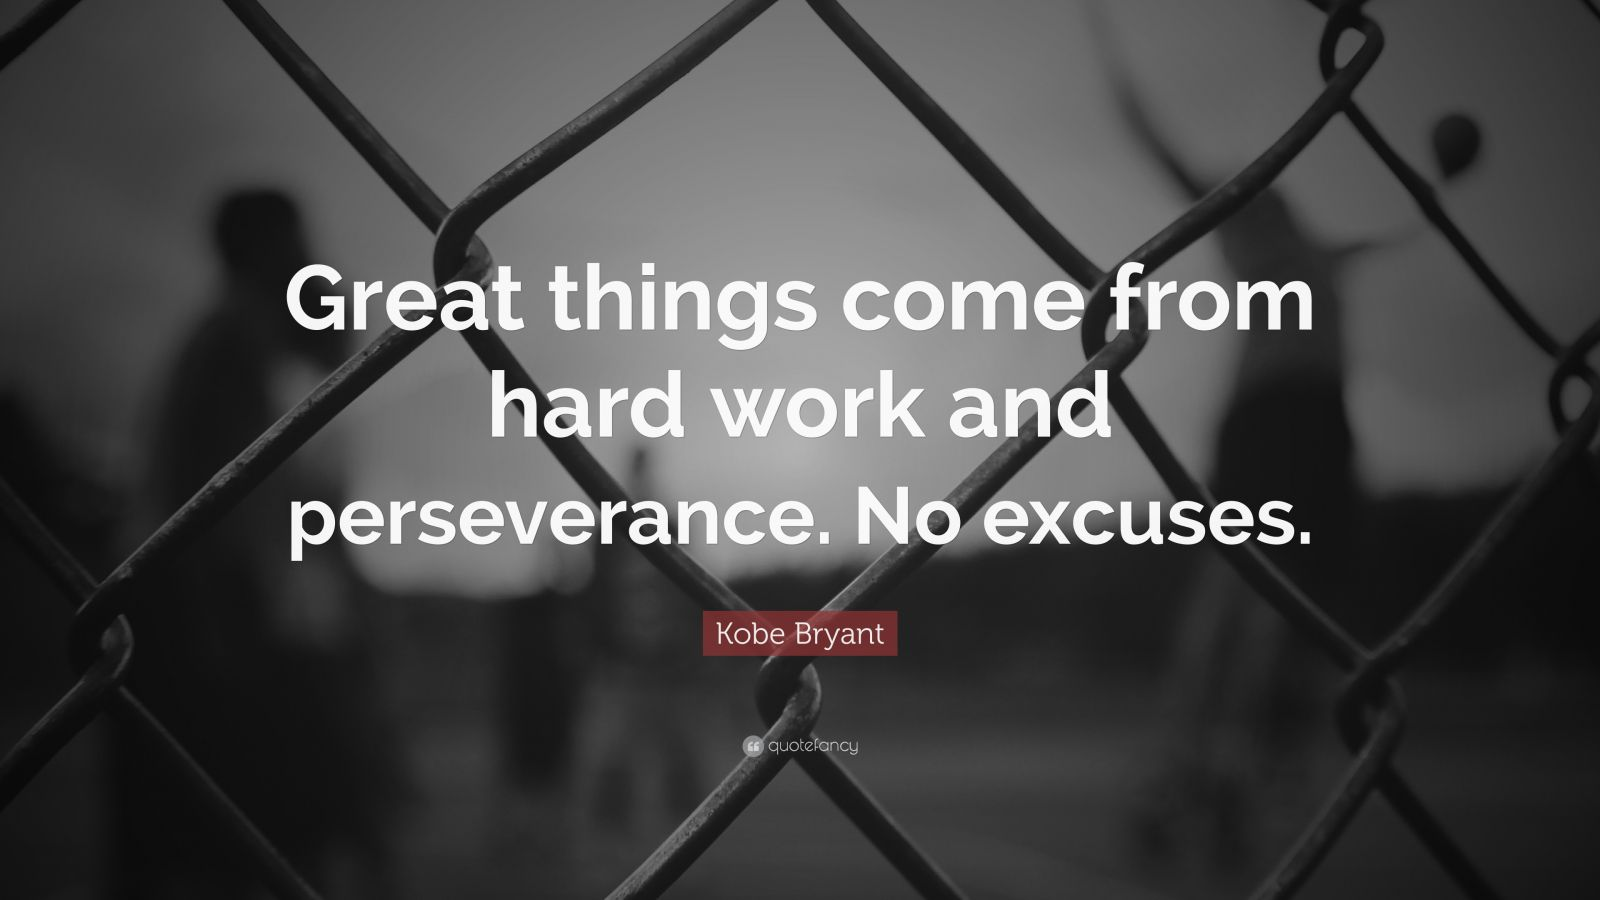 Quotes To Inspire Hard Work Quotes 40 Wallpapers  Quotefancy